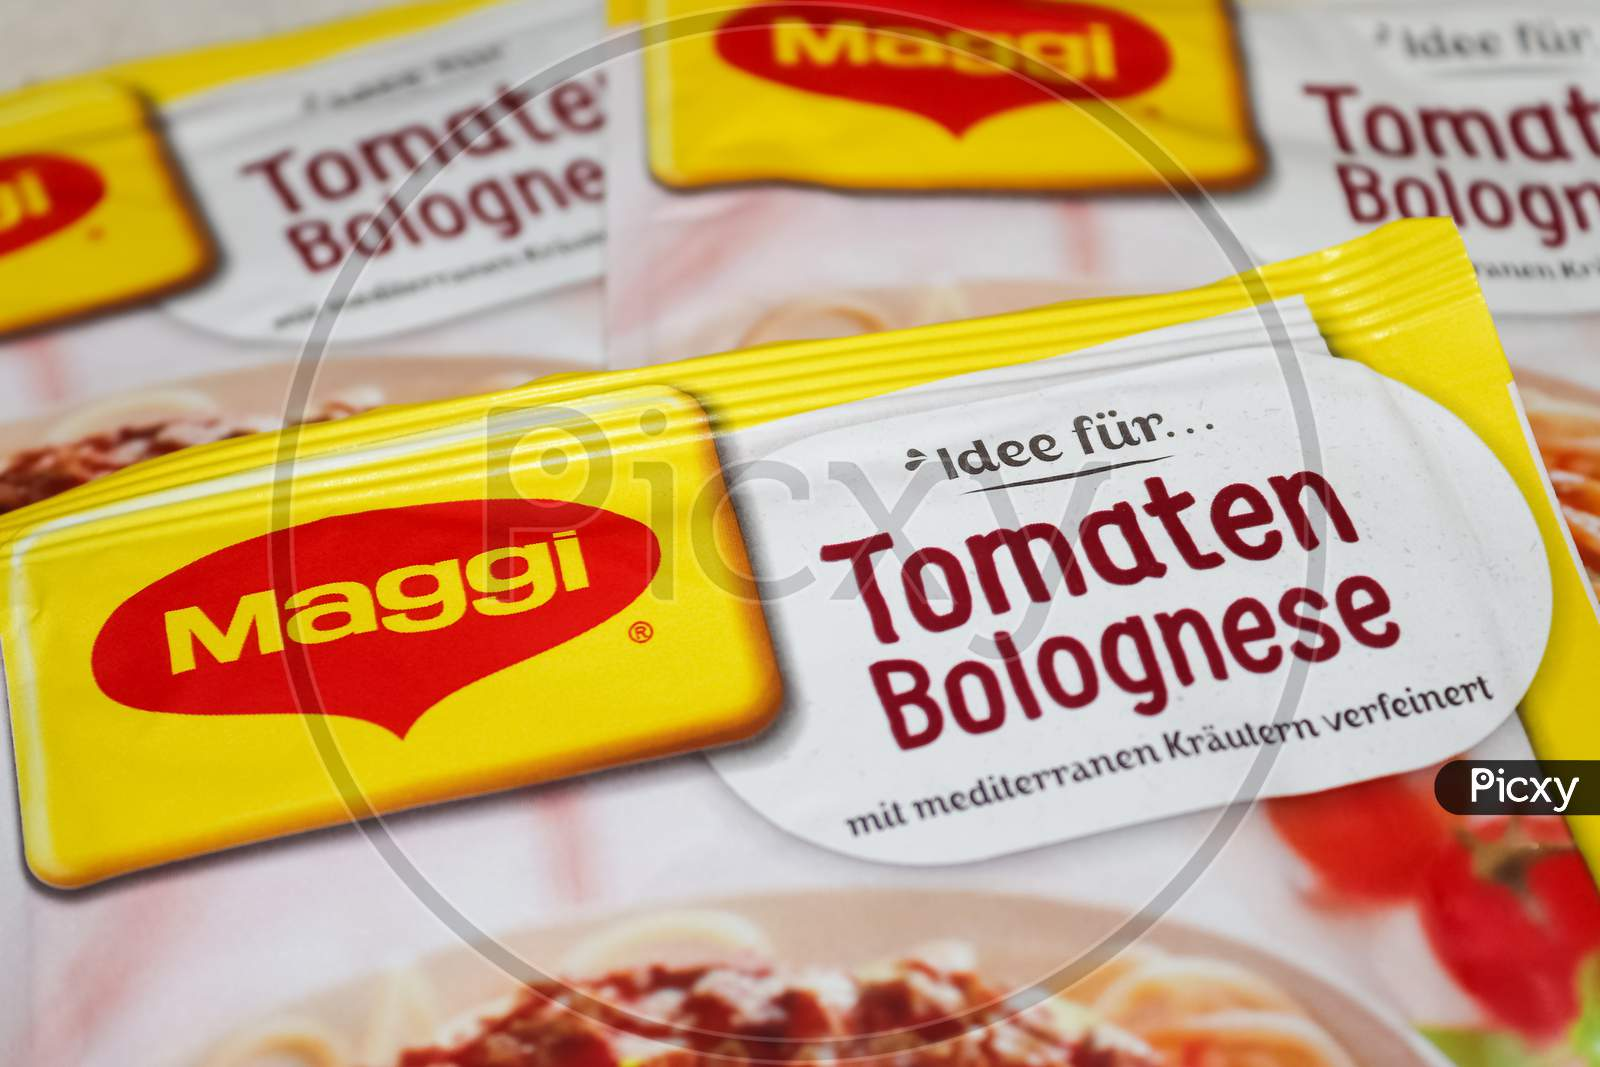 German Maggi Instant Noodles Called Spaghetti Bolognese, Owned By Nestle. Maggi Is An International Brand Of Soups, Stocks, Bouillon Cubes, Ketchup, Sauces, Seasonings And Instant Noodles.